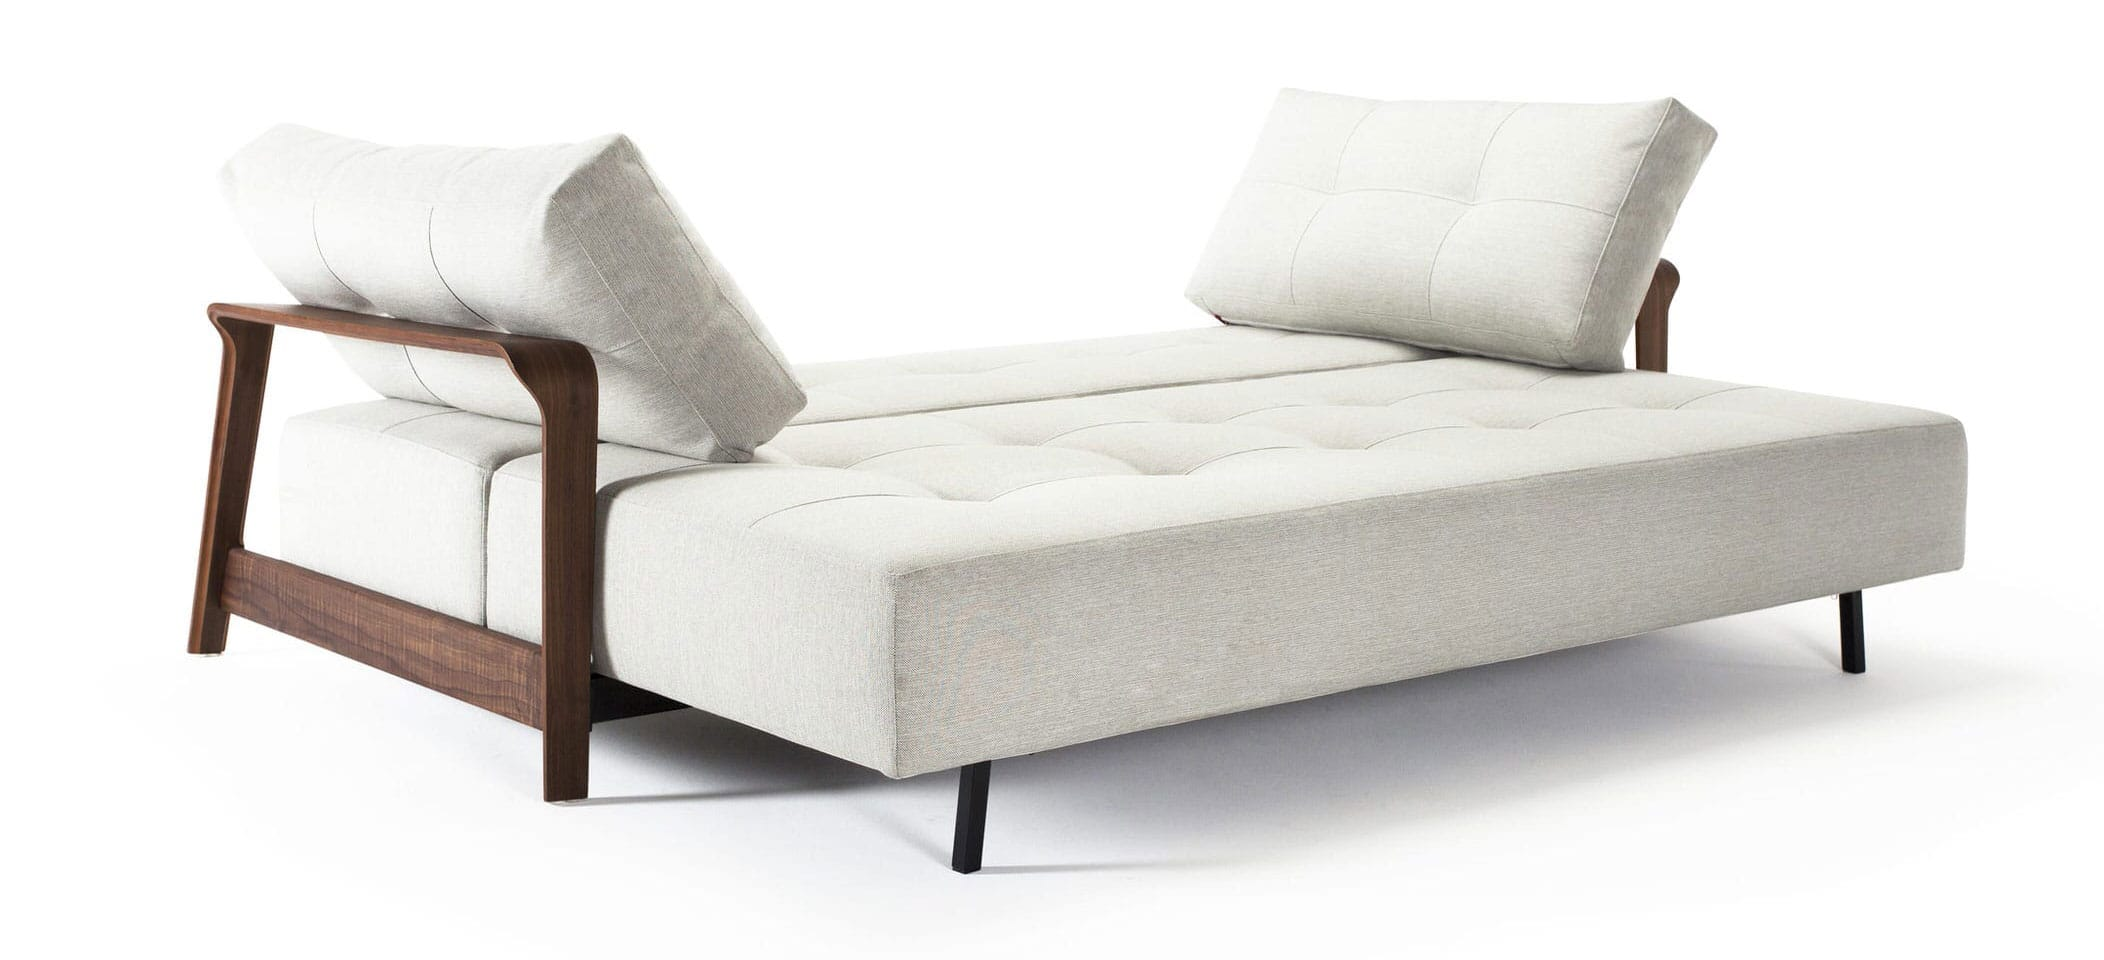 Ran Deluxe Excess Sofa Bed Queen Size Mixed Dance Natural By Innovation